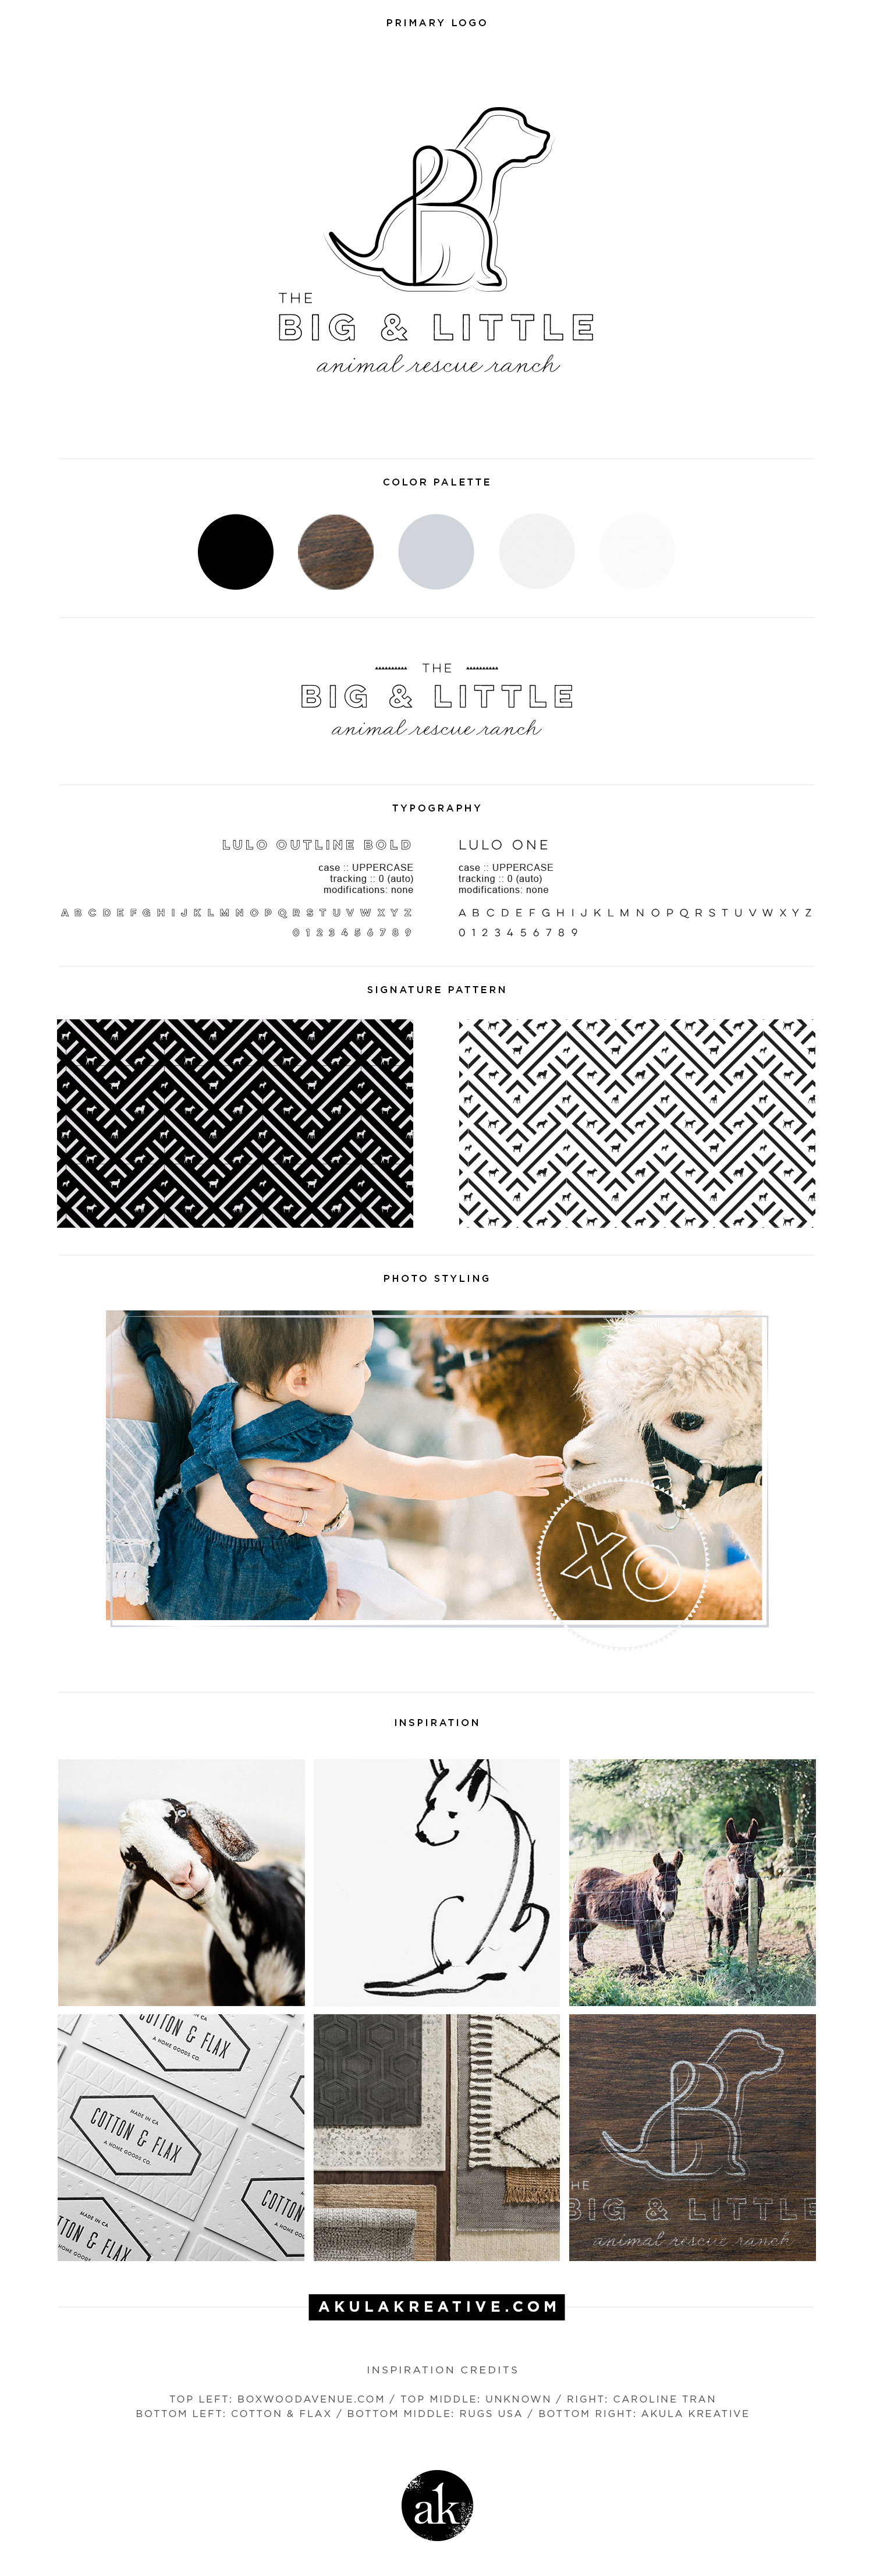 The Big & Little Ranch Style Guide | Modern Dog Ranch Branding in Neutral Colors | akulakreative.com